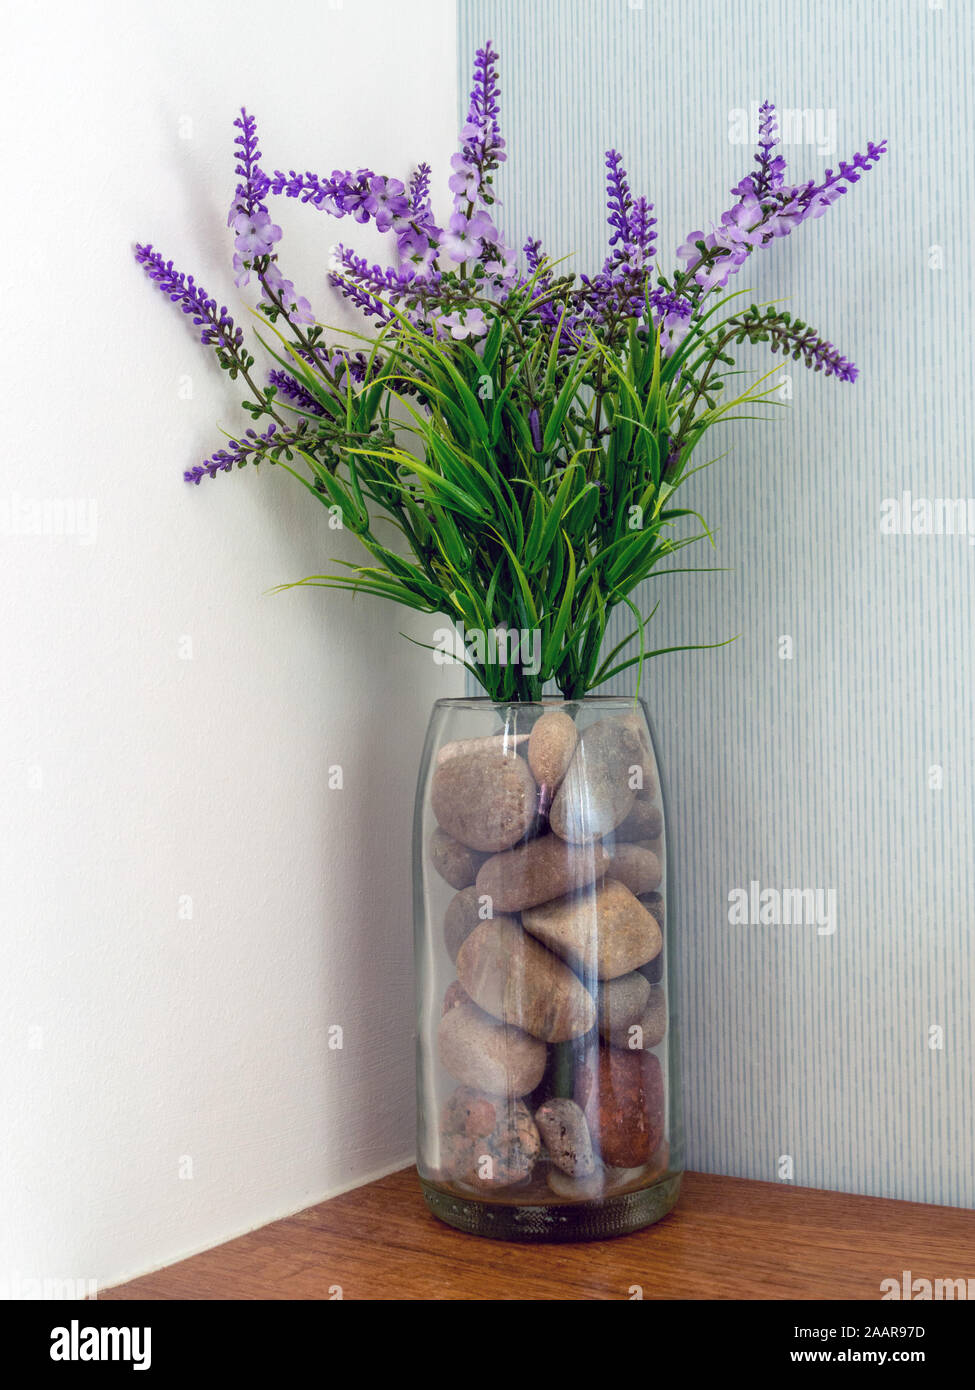 Attractive And Simple Artificial Flower Arrangement Of Purple Lavender Flowers And Pebbles In A Glass Vase Stock Photo Alamy